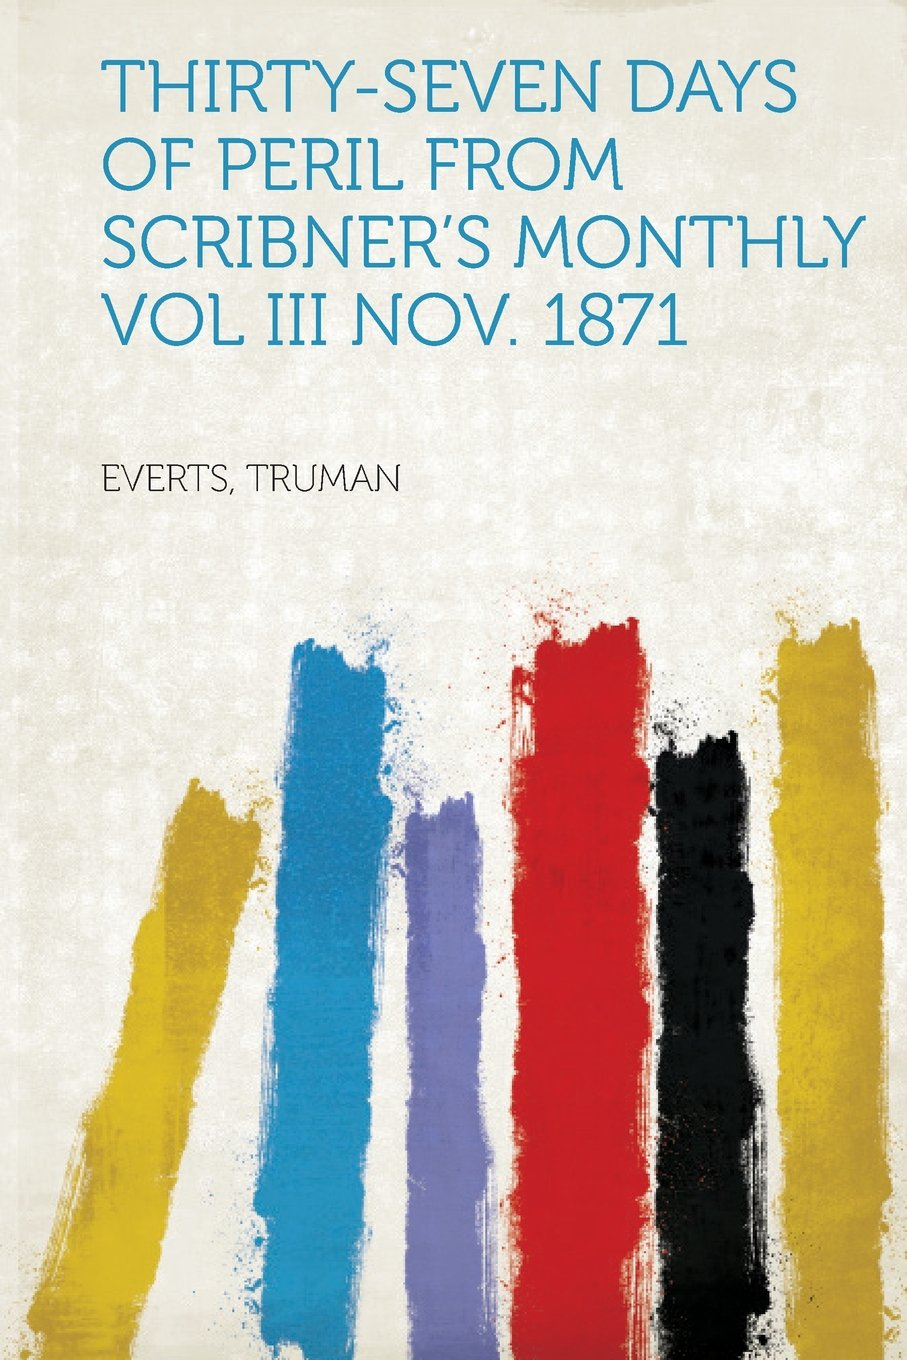 Thirty-Seven Days of Peril from Scribner's Monthly Vol III Nov. 1871 ebook